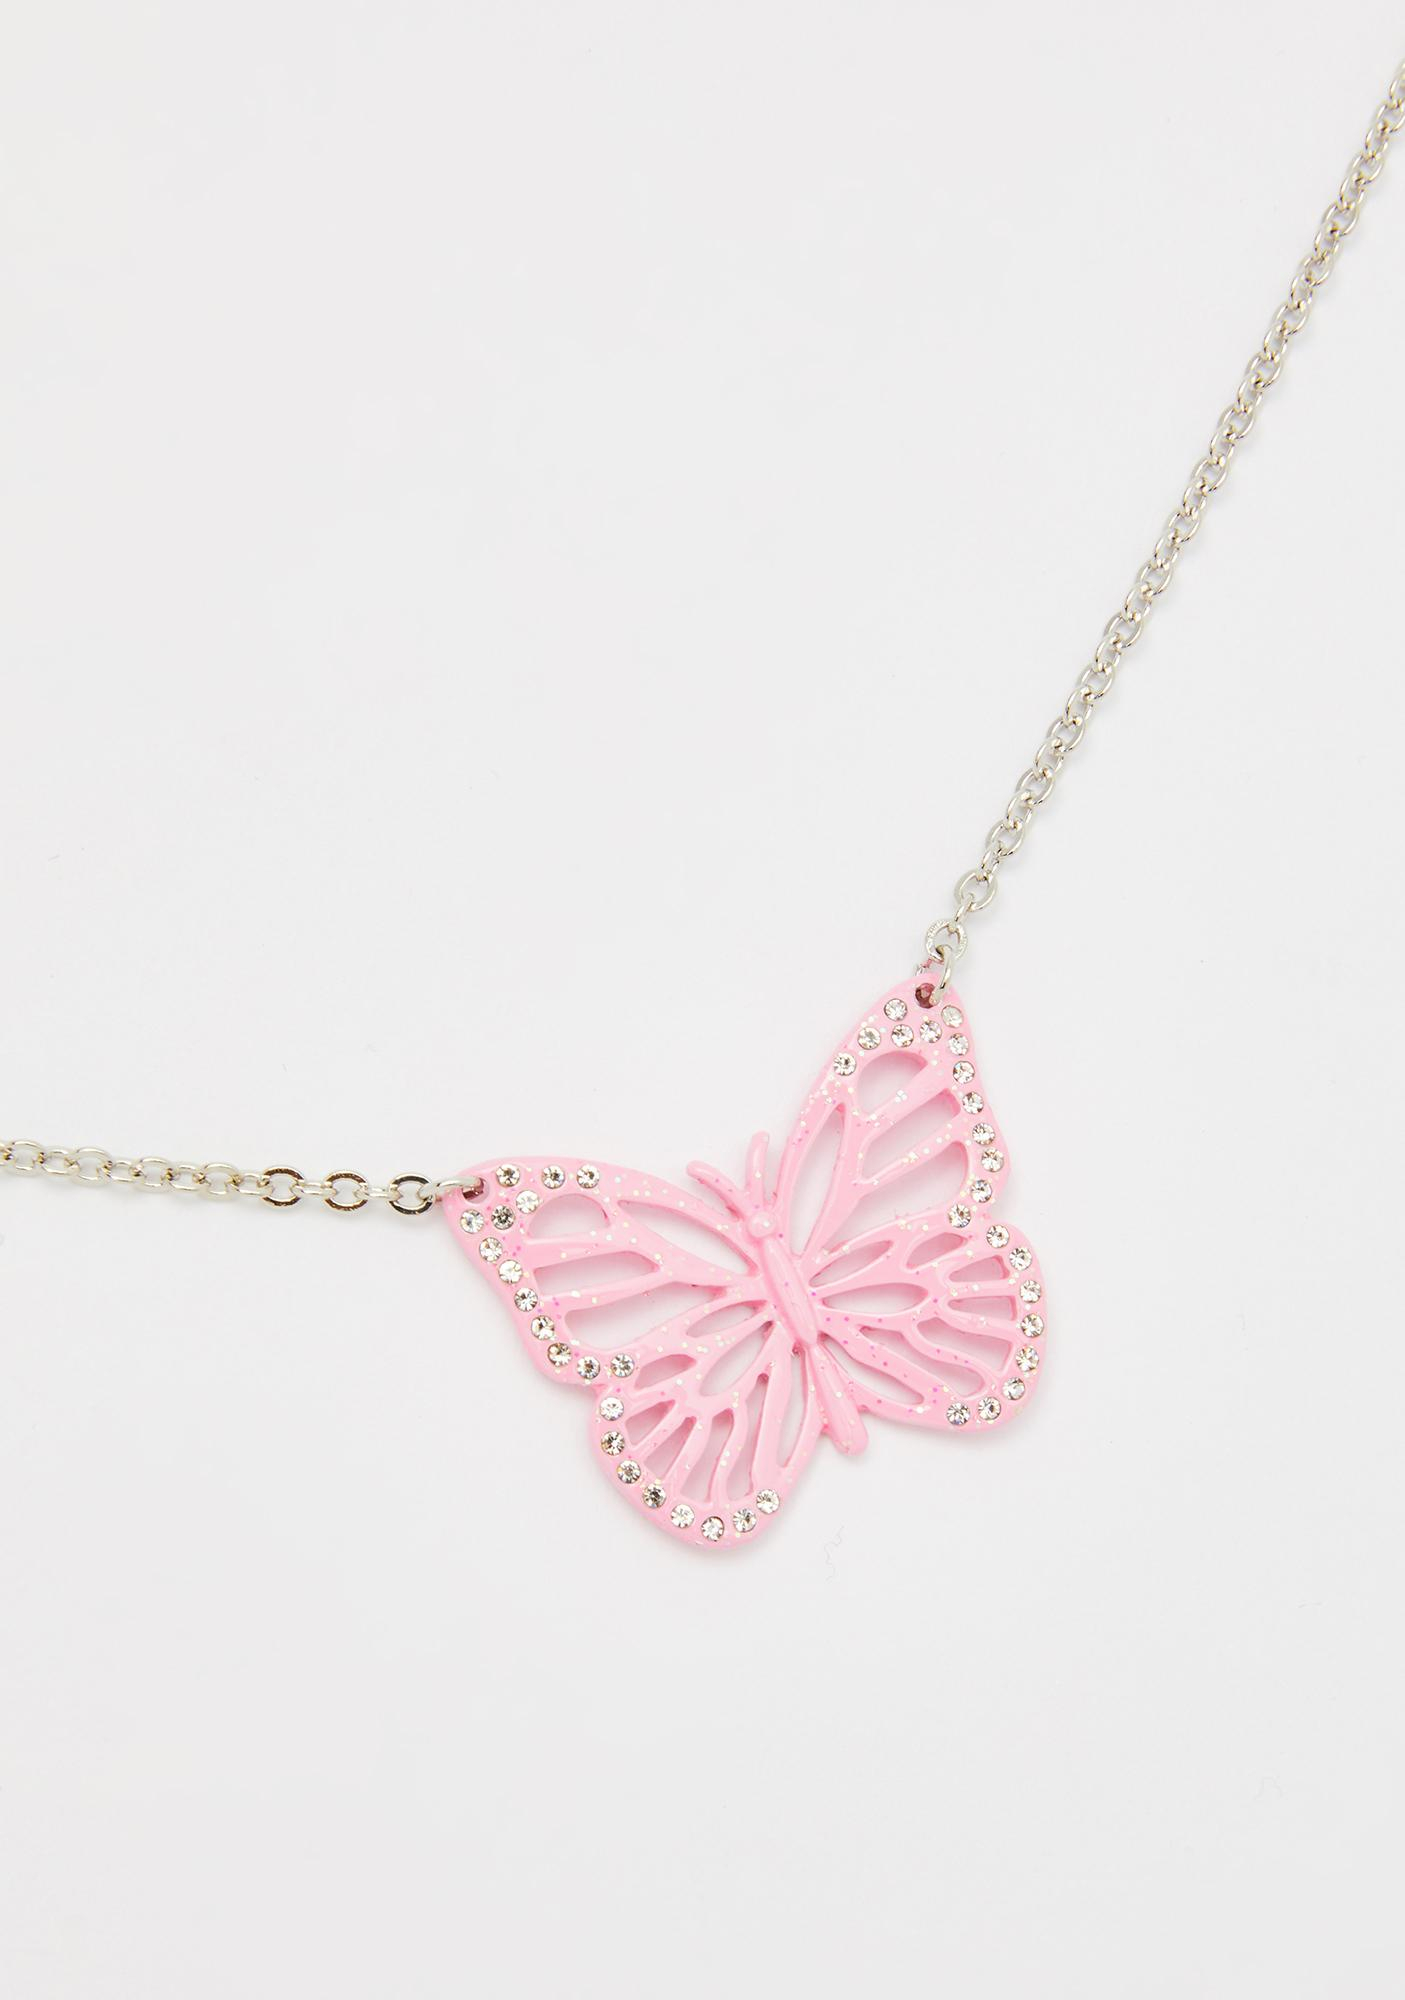 Spoiled Cute Butterfly Necklace With Current Pink Butterfly Locket Element Necklaces (View 1 of 25)